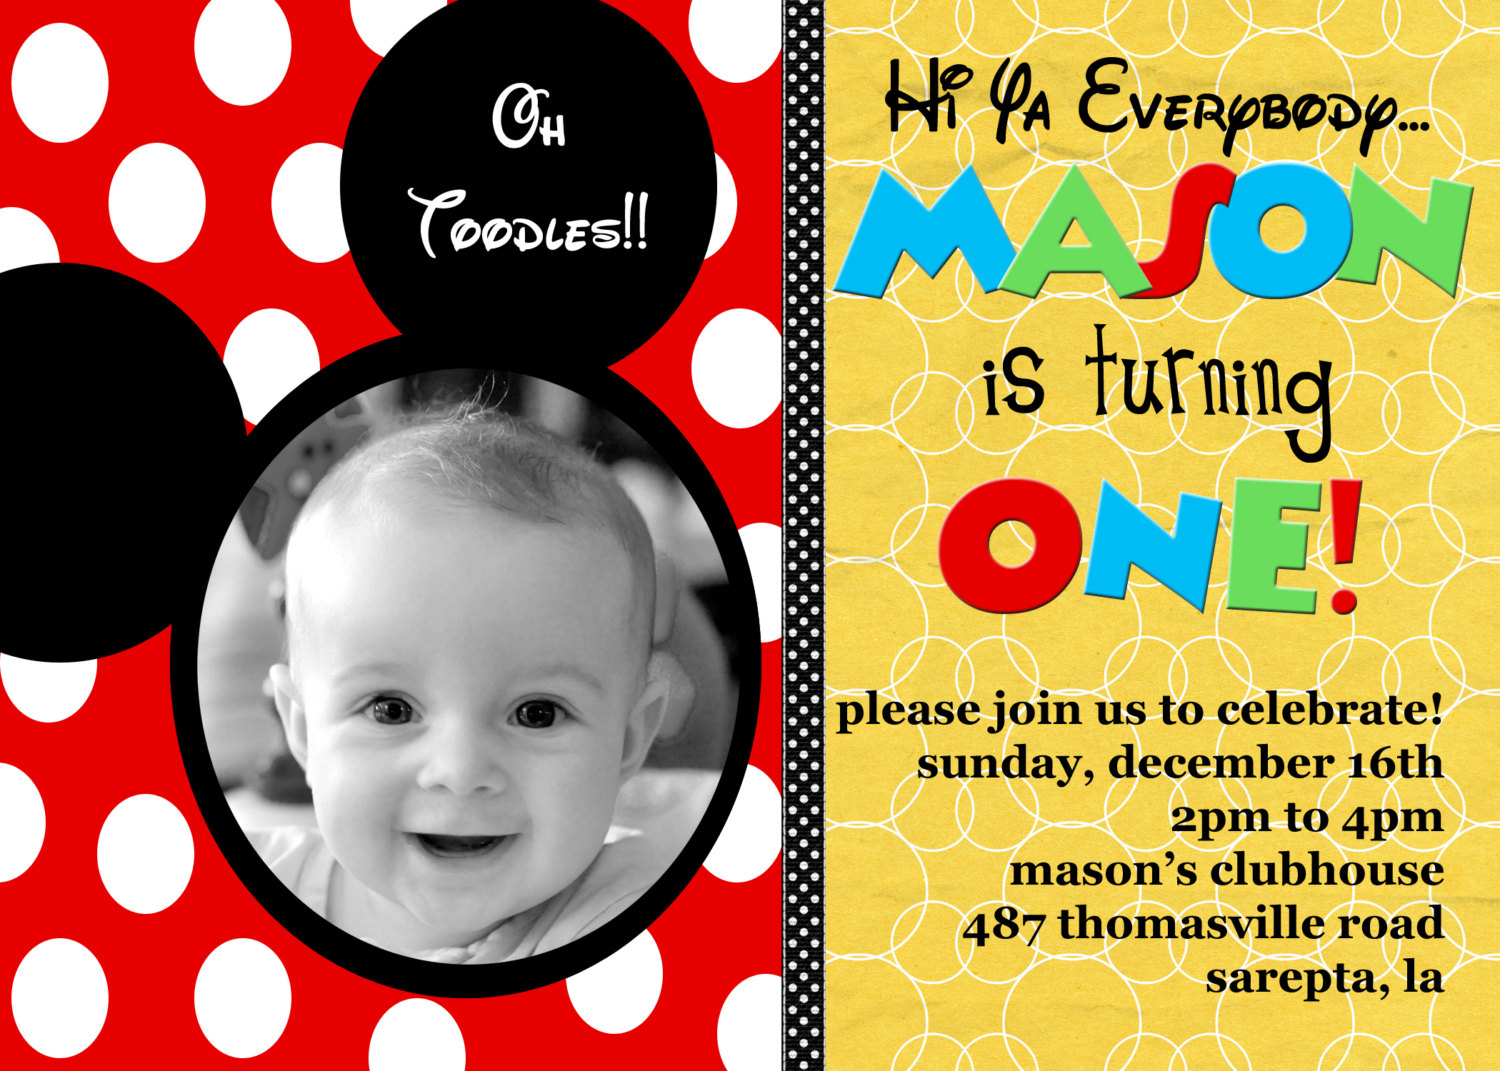 1st birthday invitation mickey mouse theme ; Personalized-Mickey-Mouse-Birthday-Invitations-which-can-be-used-to-make-your-own-Birthday-invitation-design-1